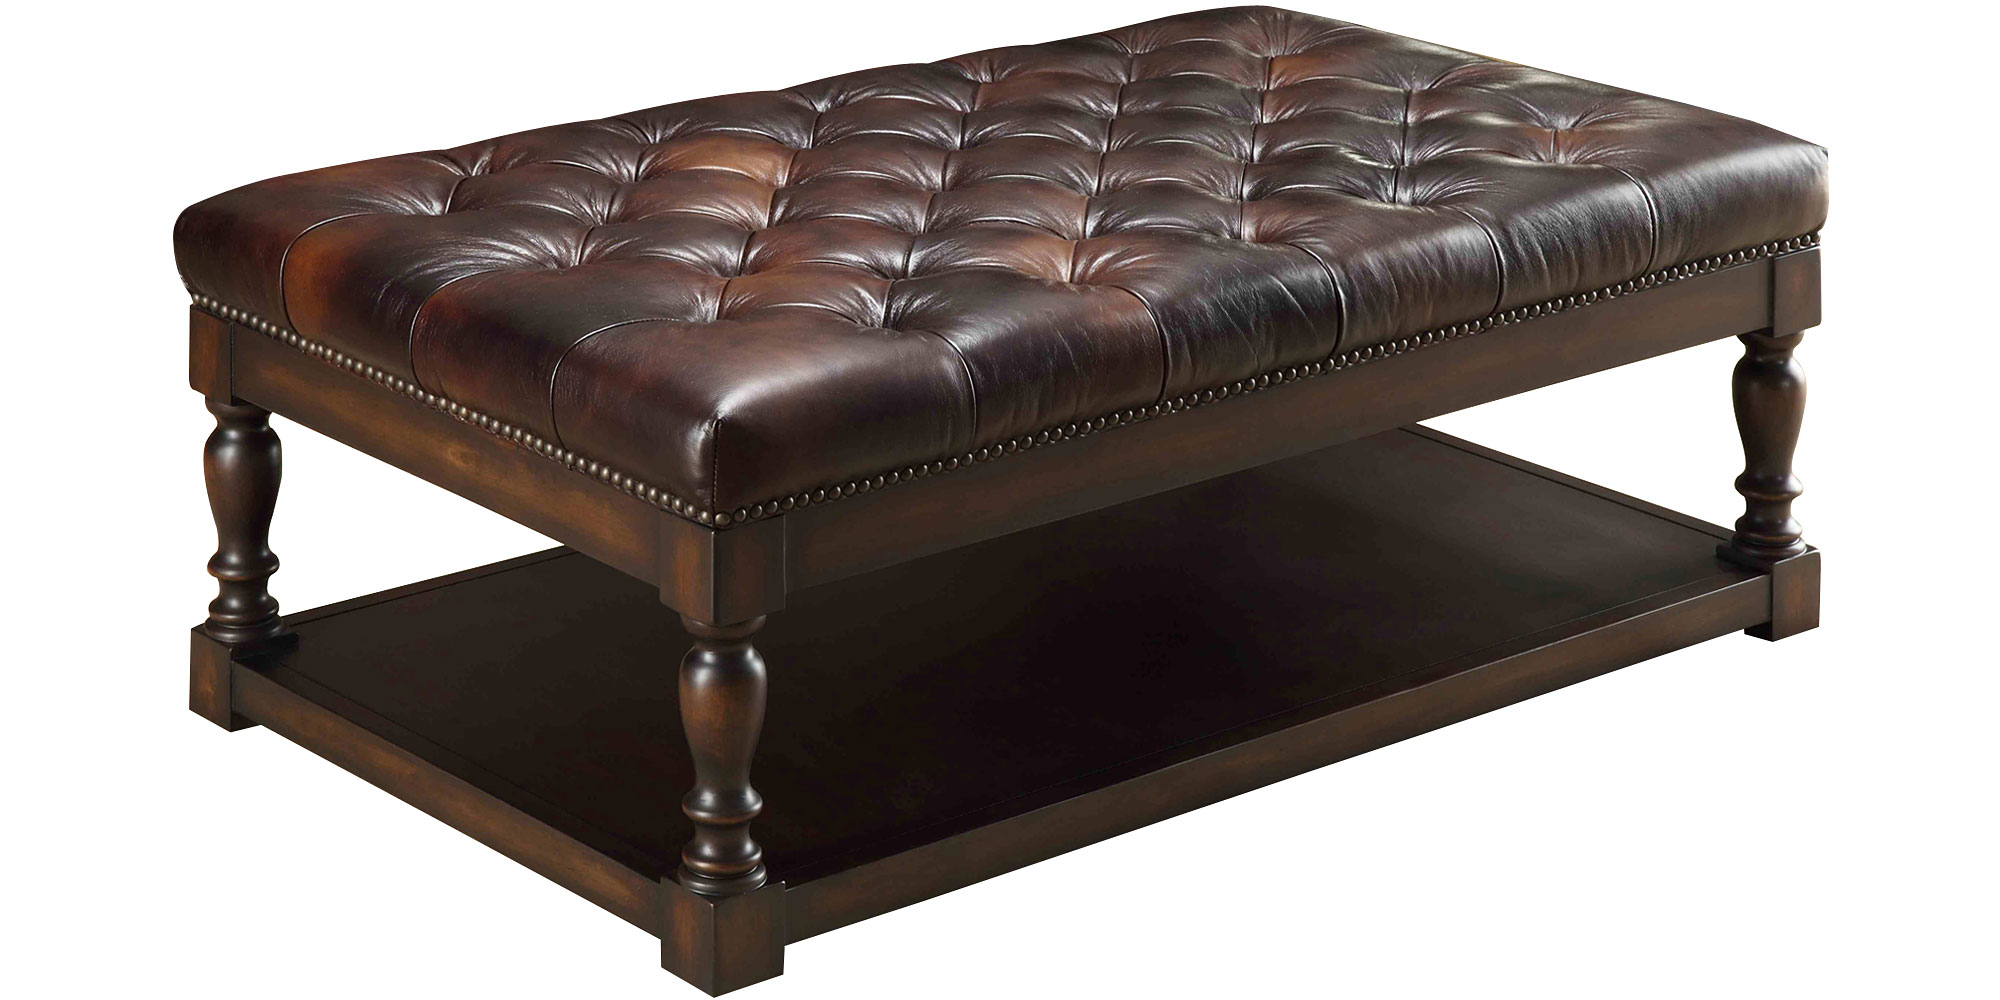 Featured Photo of  Round Leather Storage Ottoman Coffee Table